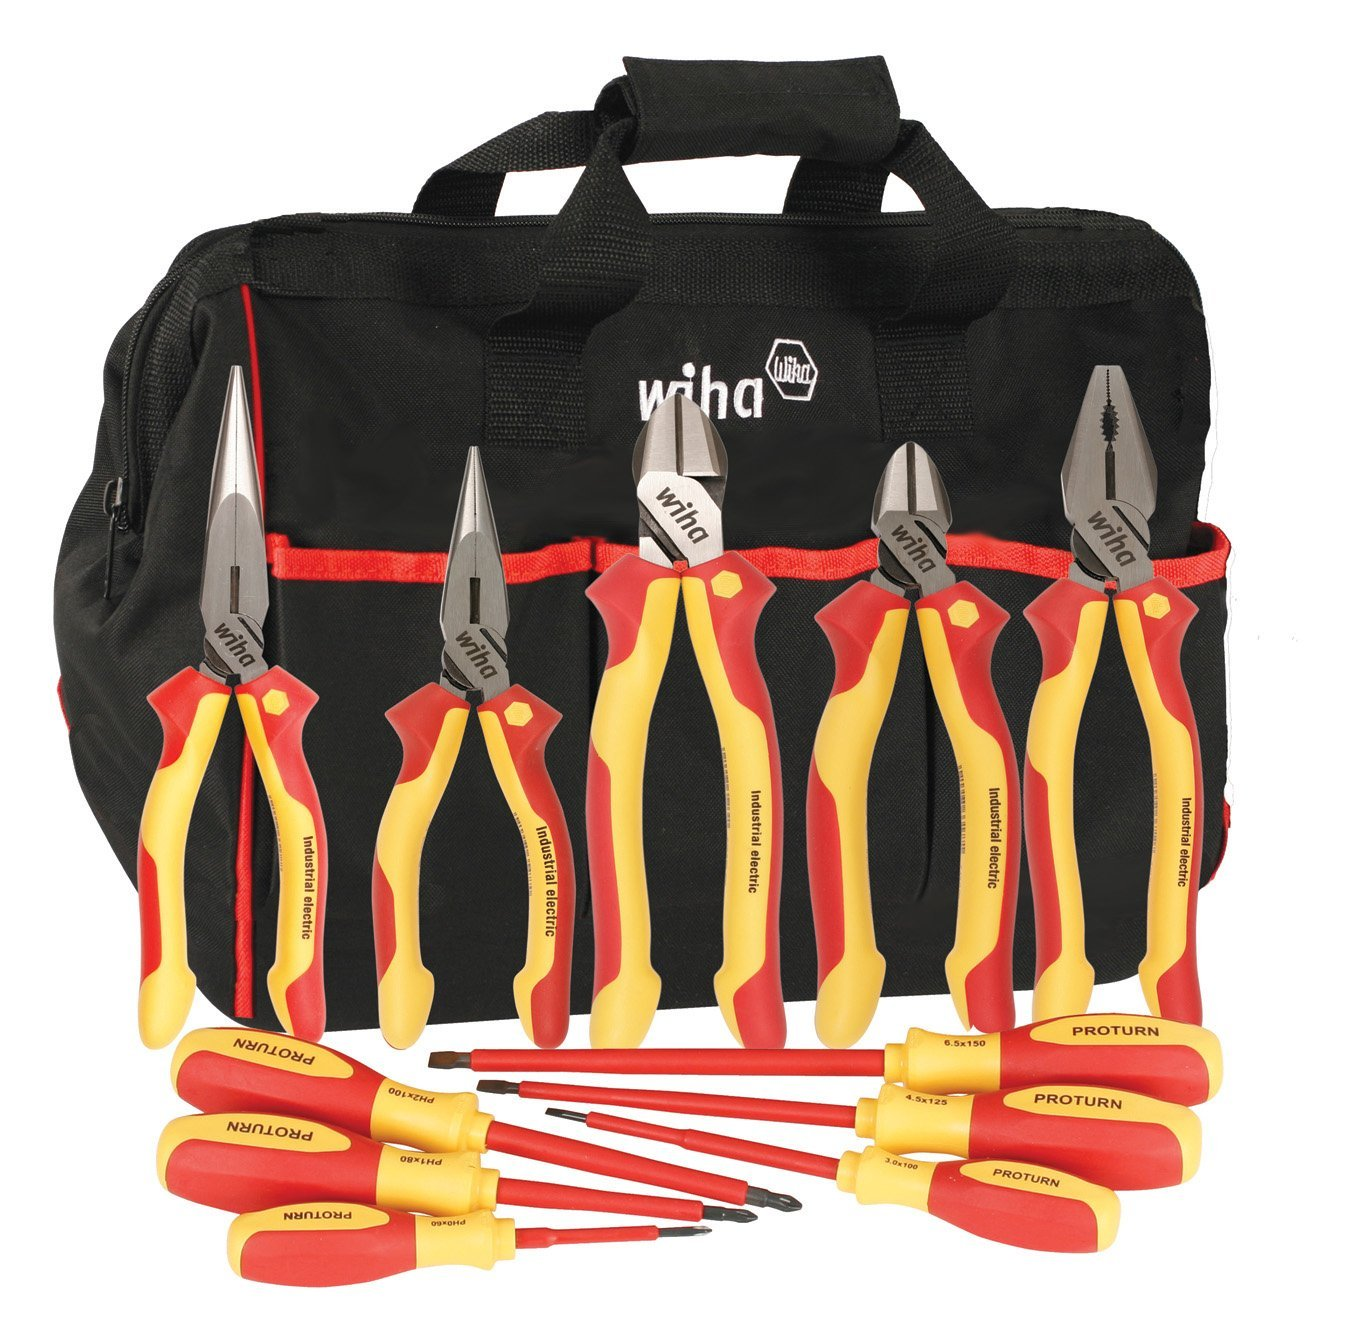 Wiha 32390 Insulated Pliers, Cutters & Drivers. 1000 Volt, In Canvas Tool Bag, 11 Piece by Wiha